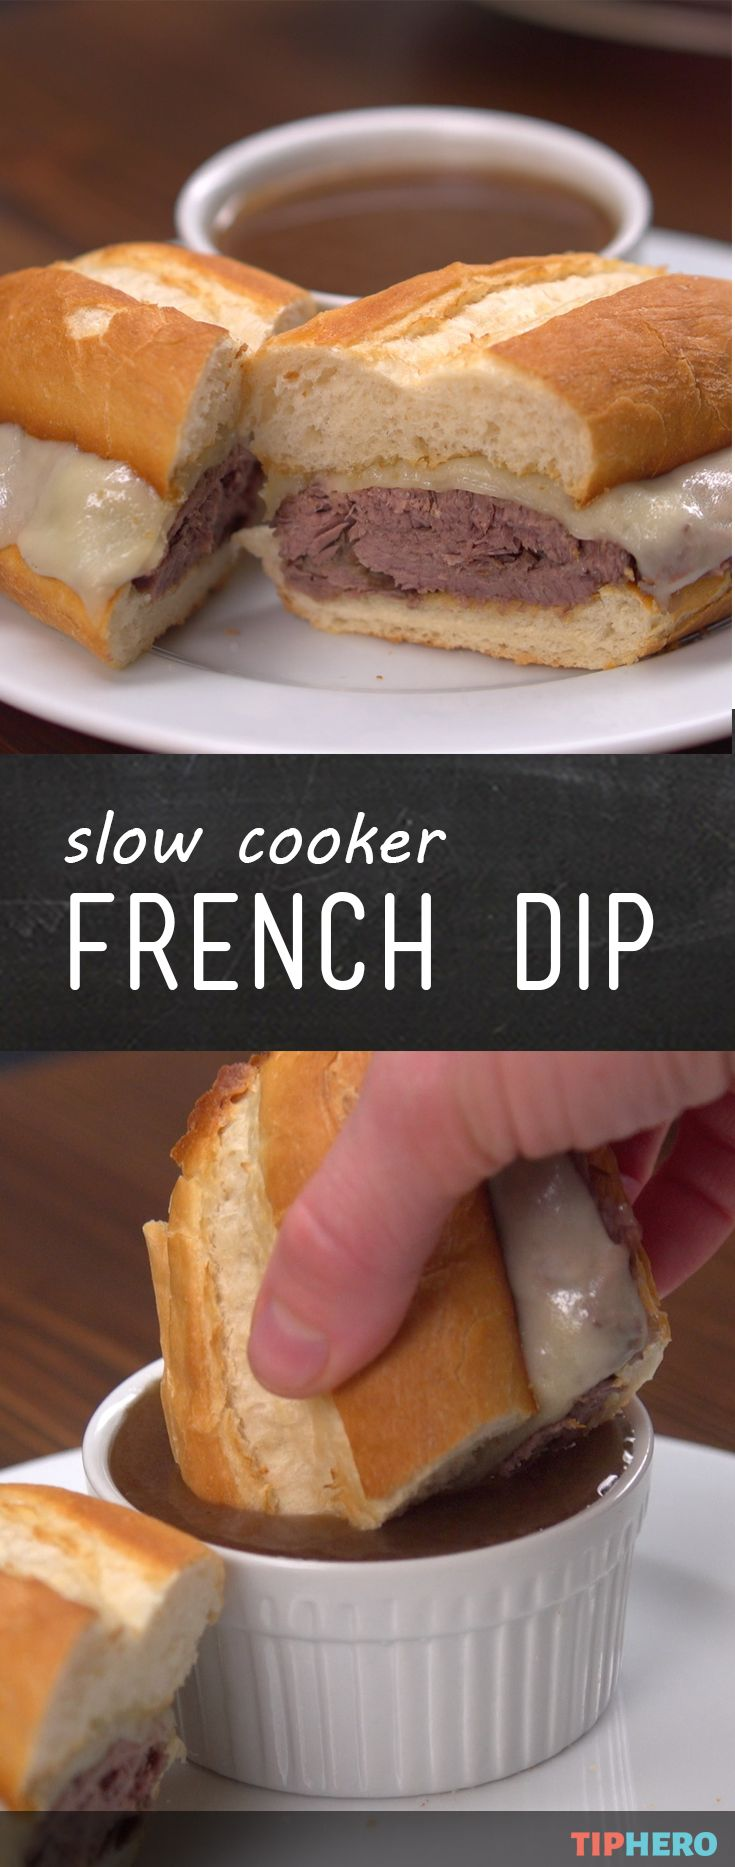 Slow cooker french dip | Recipe